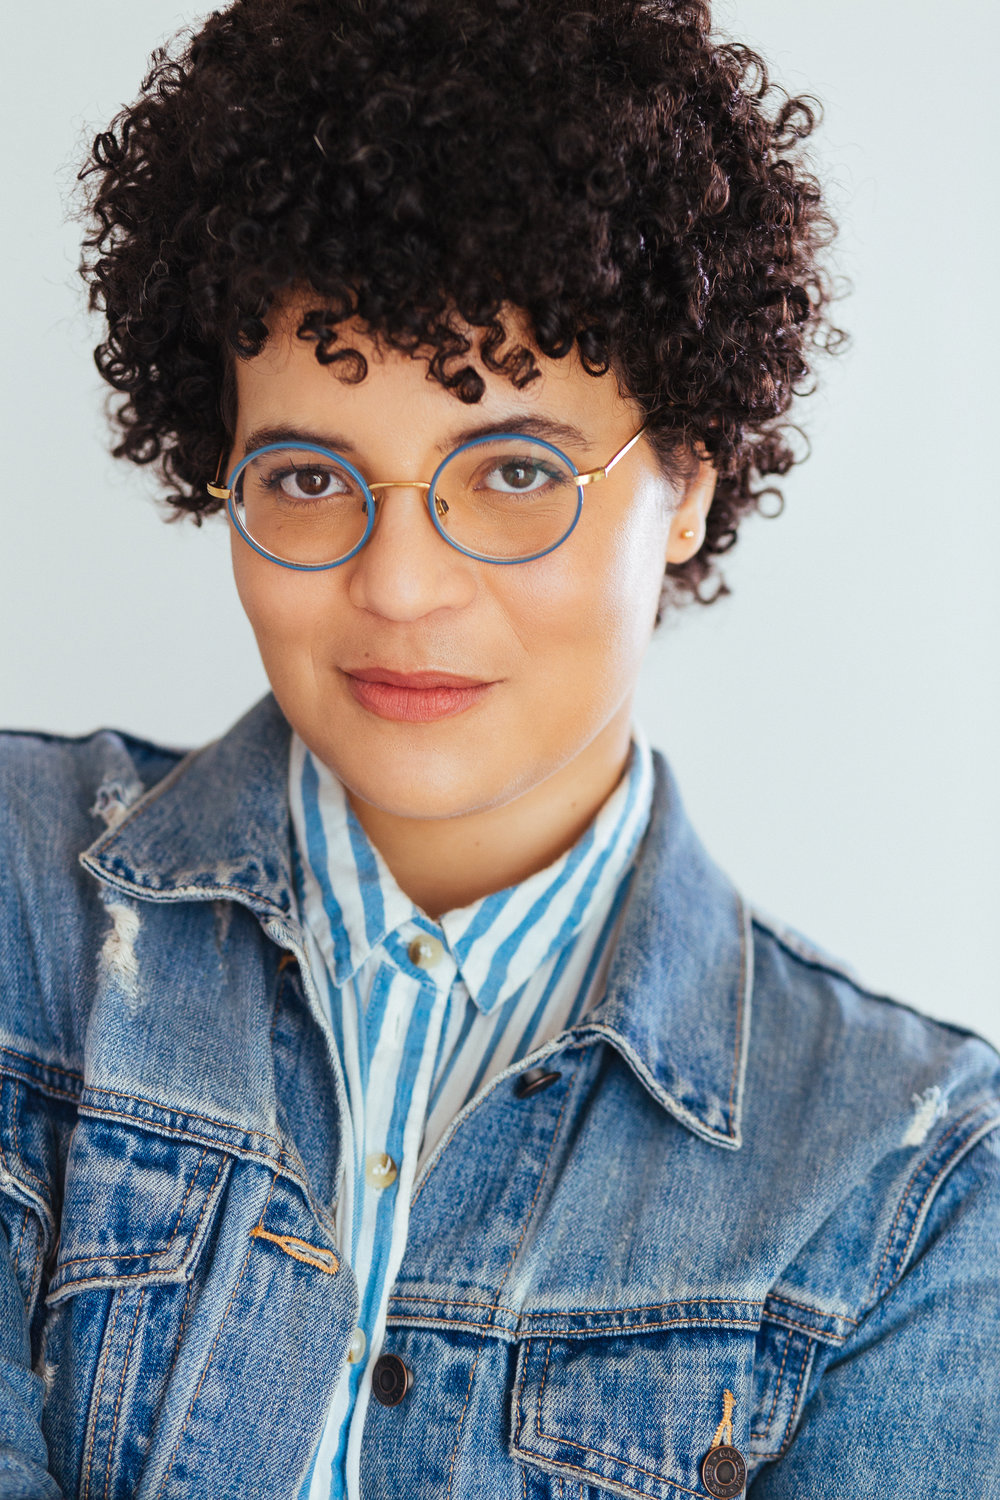 - Nanie is an actor/ improvisor/ writer based in Brooklyn. She has been studying improv since 2013 and has appeared in sketches for The Onion and College Humor. She was a writer/performer for two seasons on the house team Characters Welcome at UCBT. She currently performs monthly at UCBT Hell's Kitchen Maude Night on the sketch team Lake Fire. Nanie also co-hosts an all female variety show called Fly Gurlz at The Magnet Theatre. She was a 2017 NBC/UCBT Diversity Scholarship Finalist and a featured performer at the Cinder Block Comedy Festival. She is a proud member of the HB Ensemble. And a Story Pirates Company member.